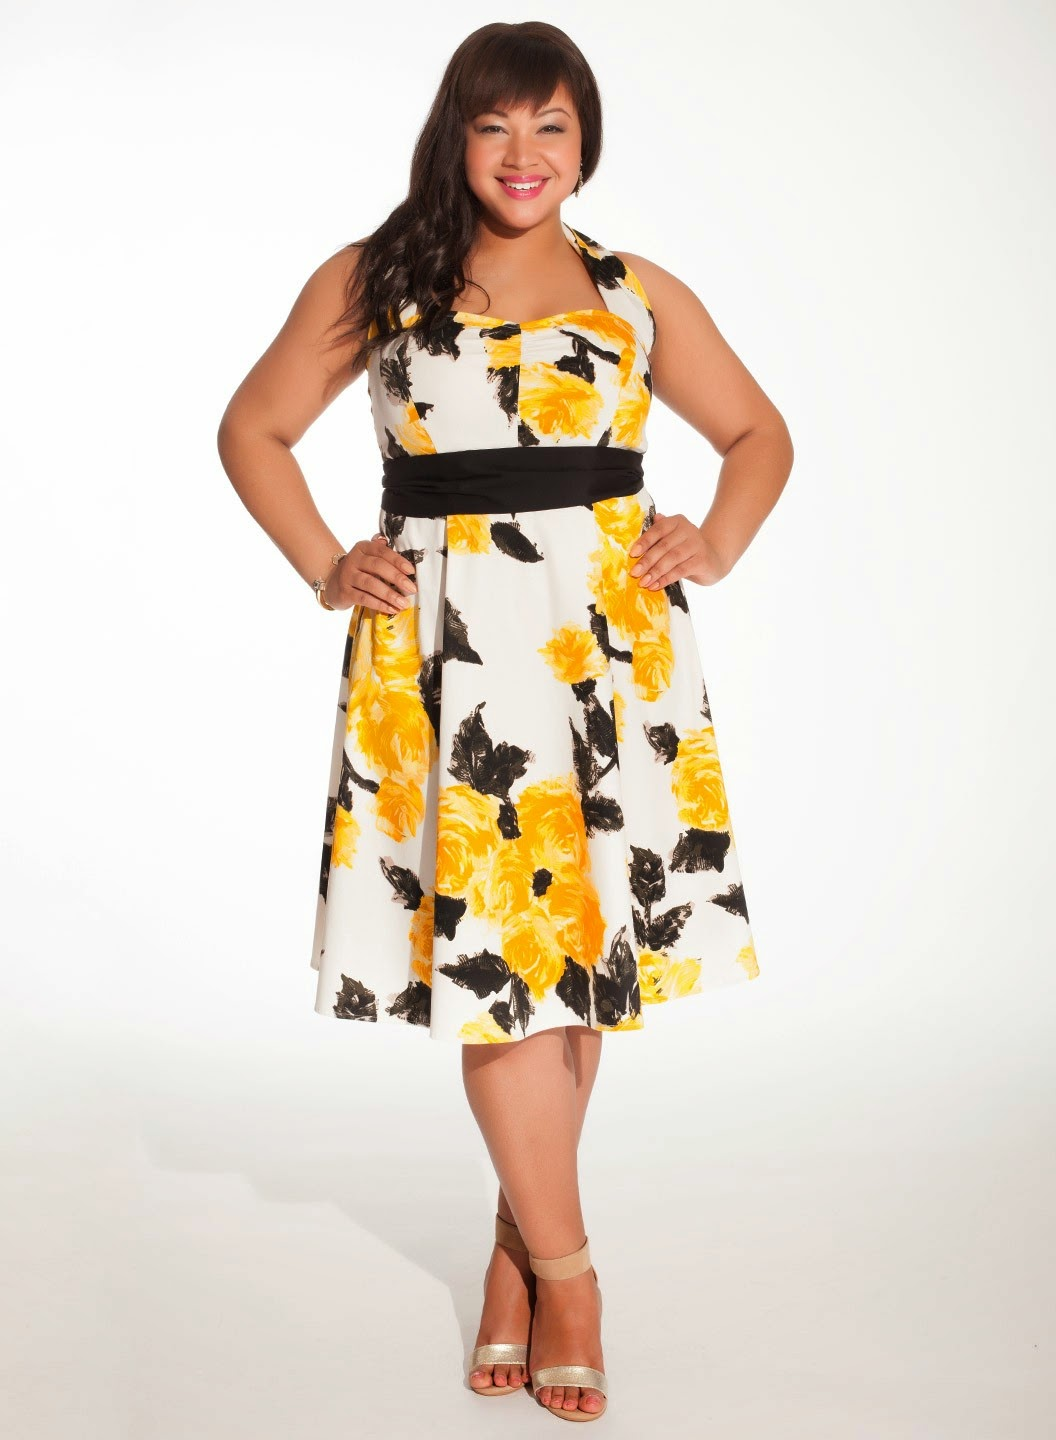 Plus Size Clothing For Spring You Are Guaranteed to Love ...